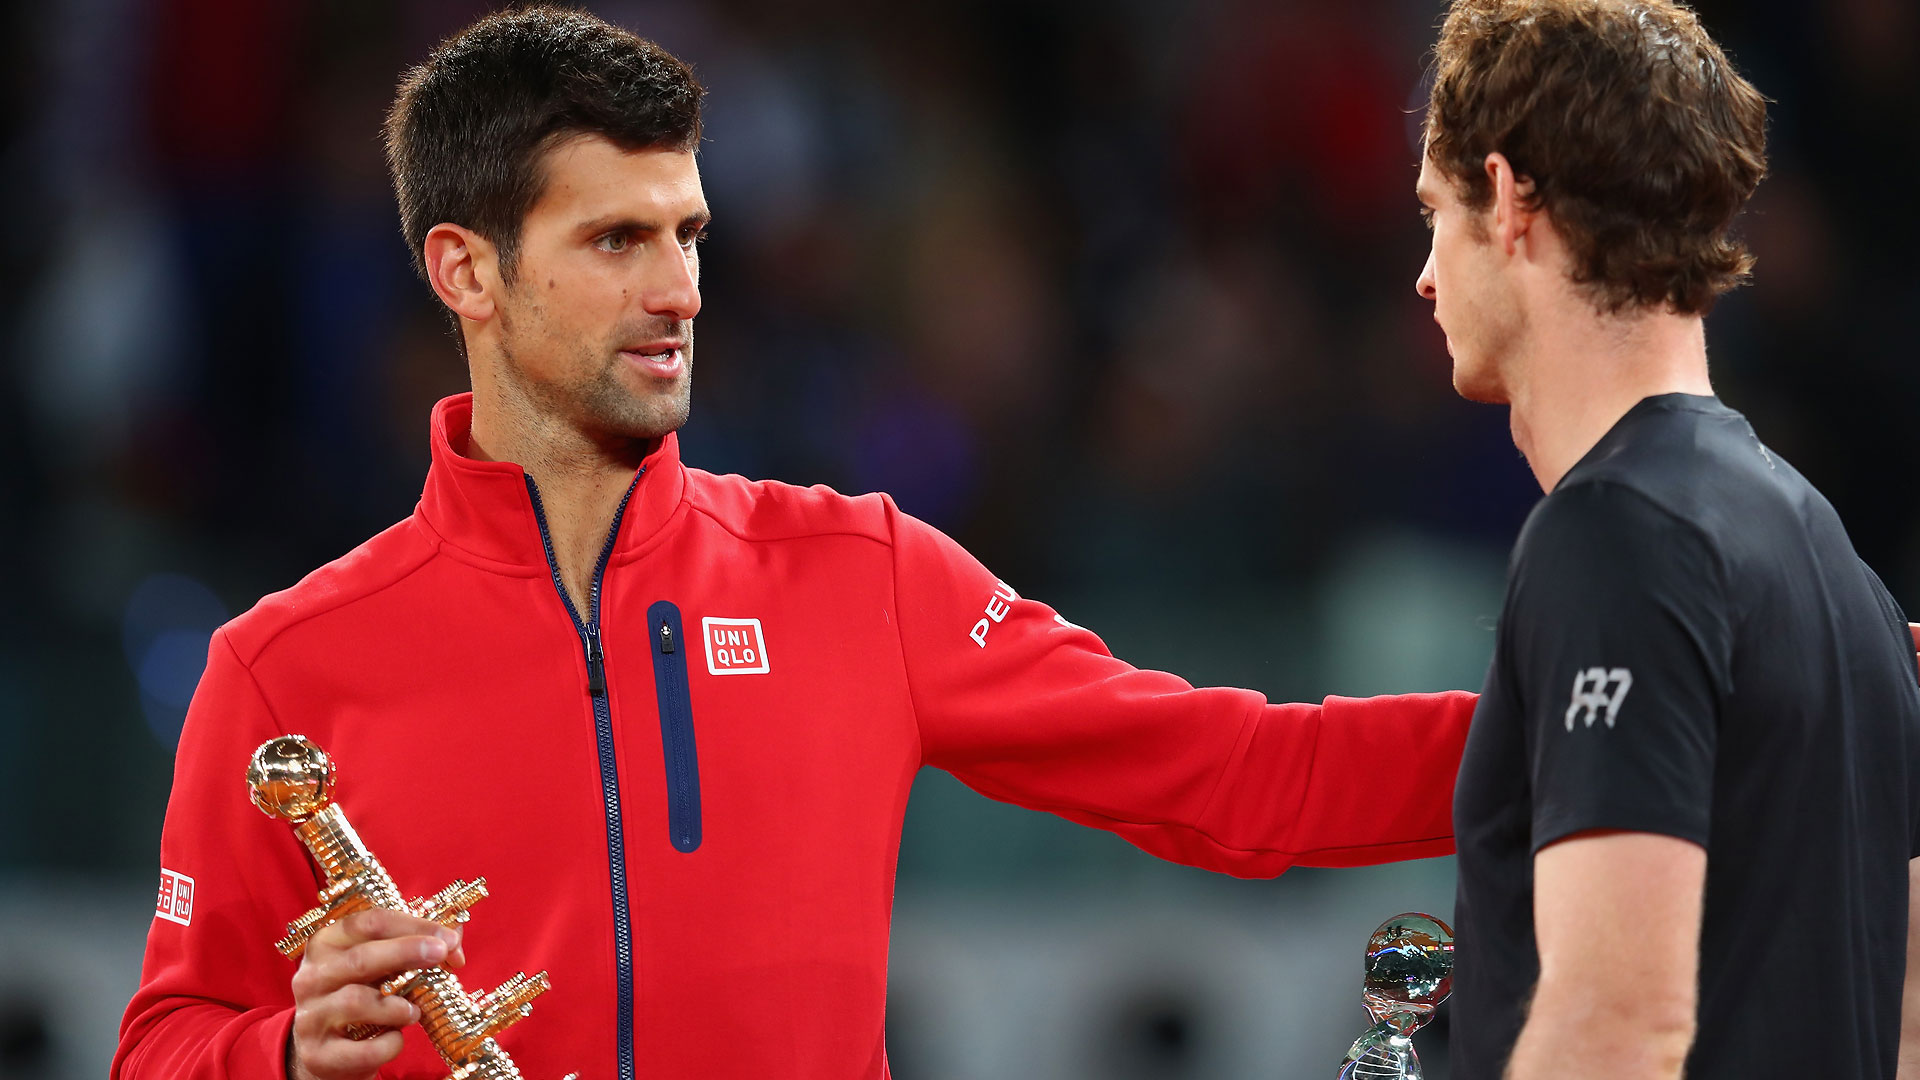 Djokovic, Murray